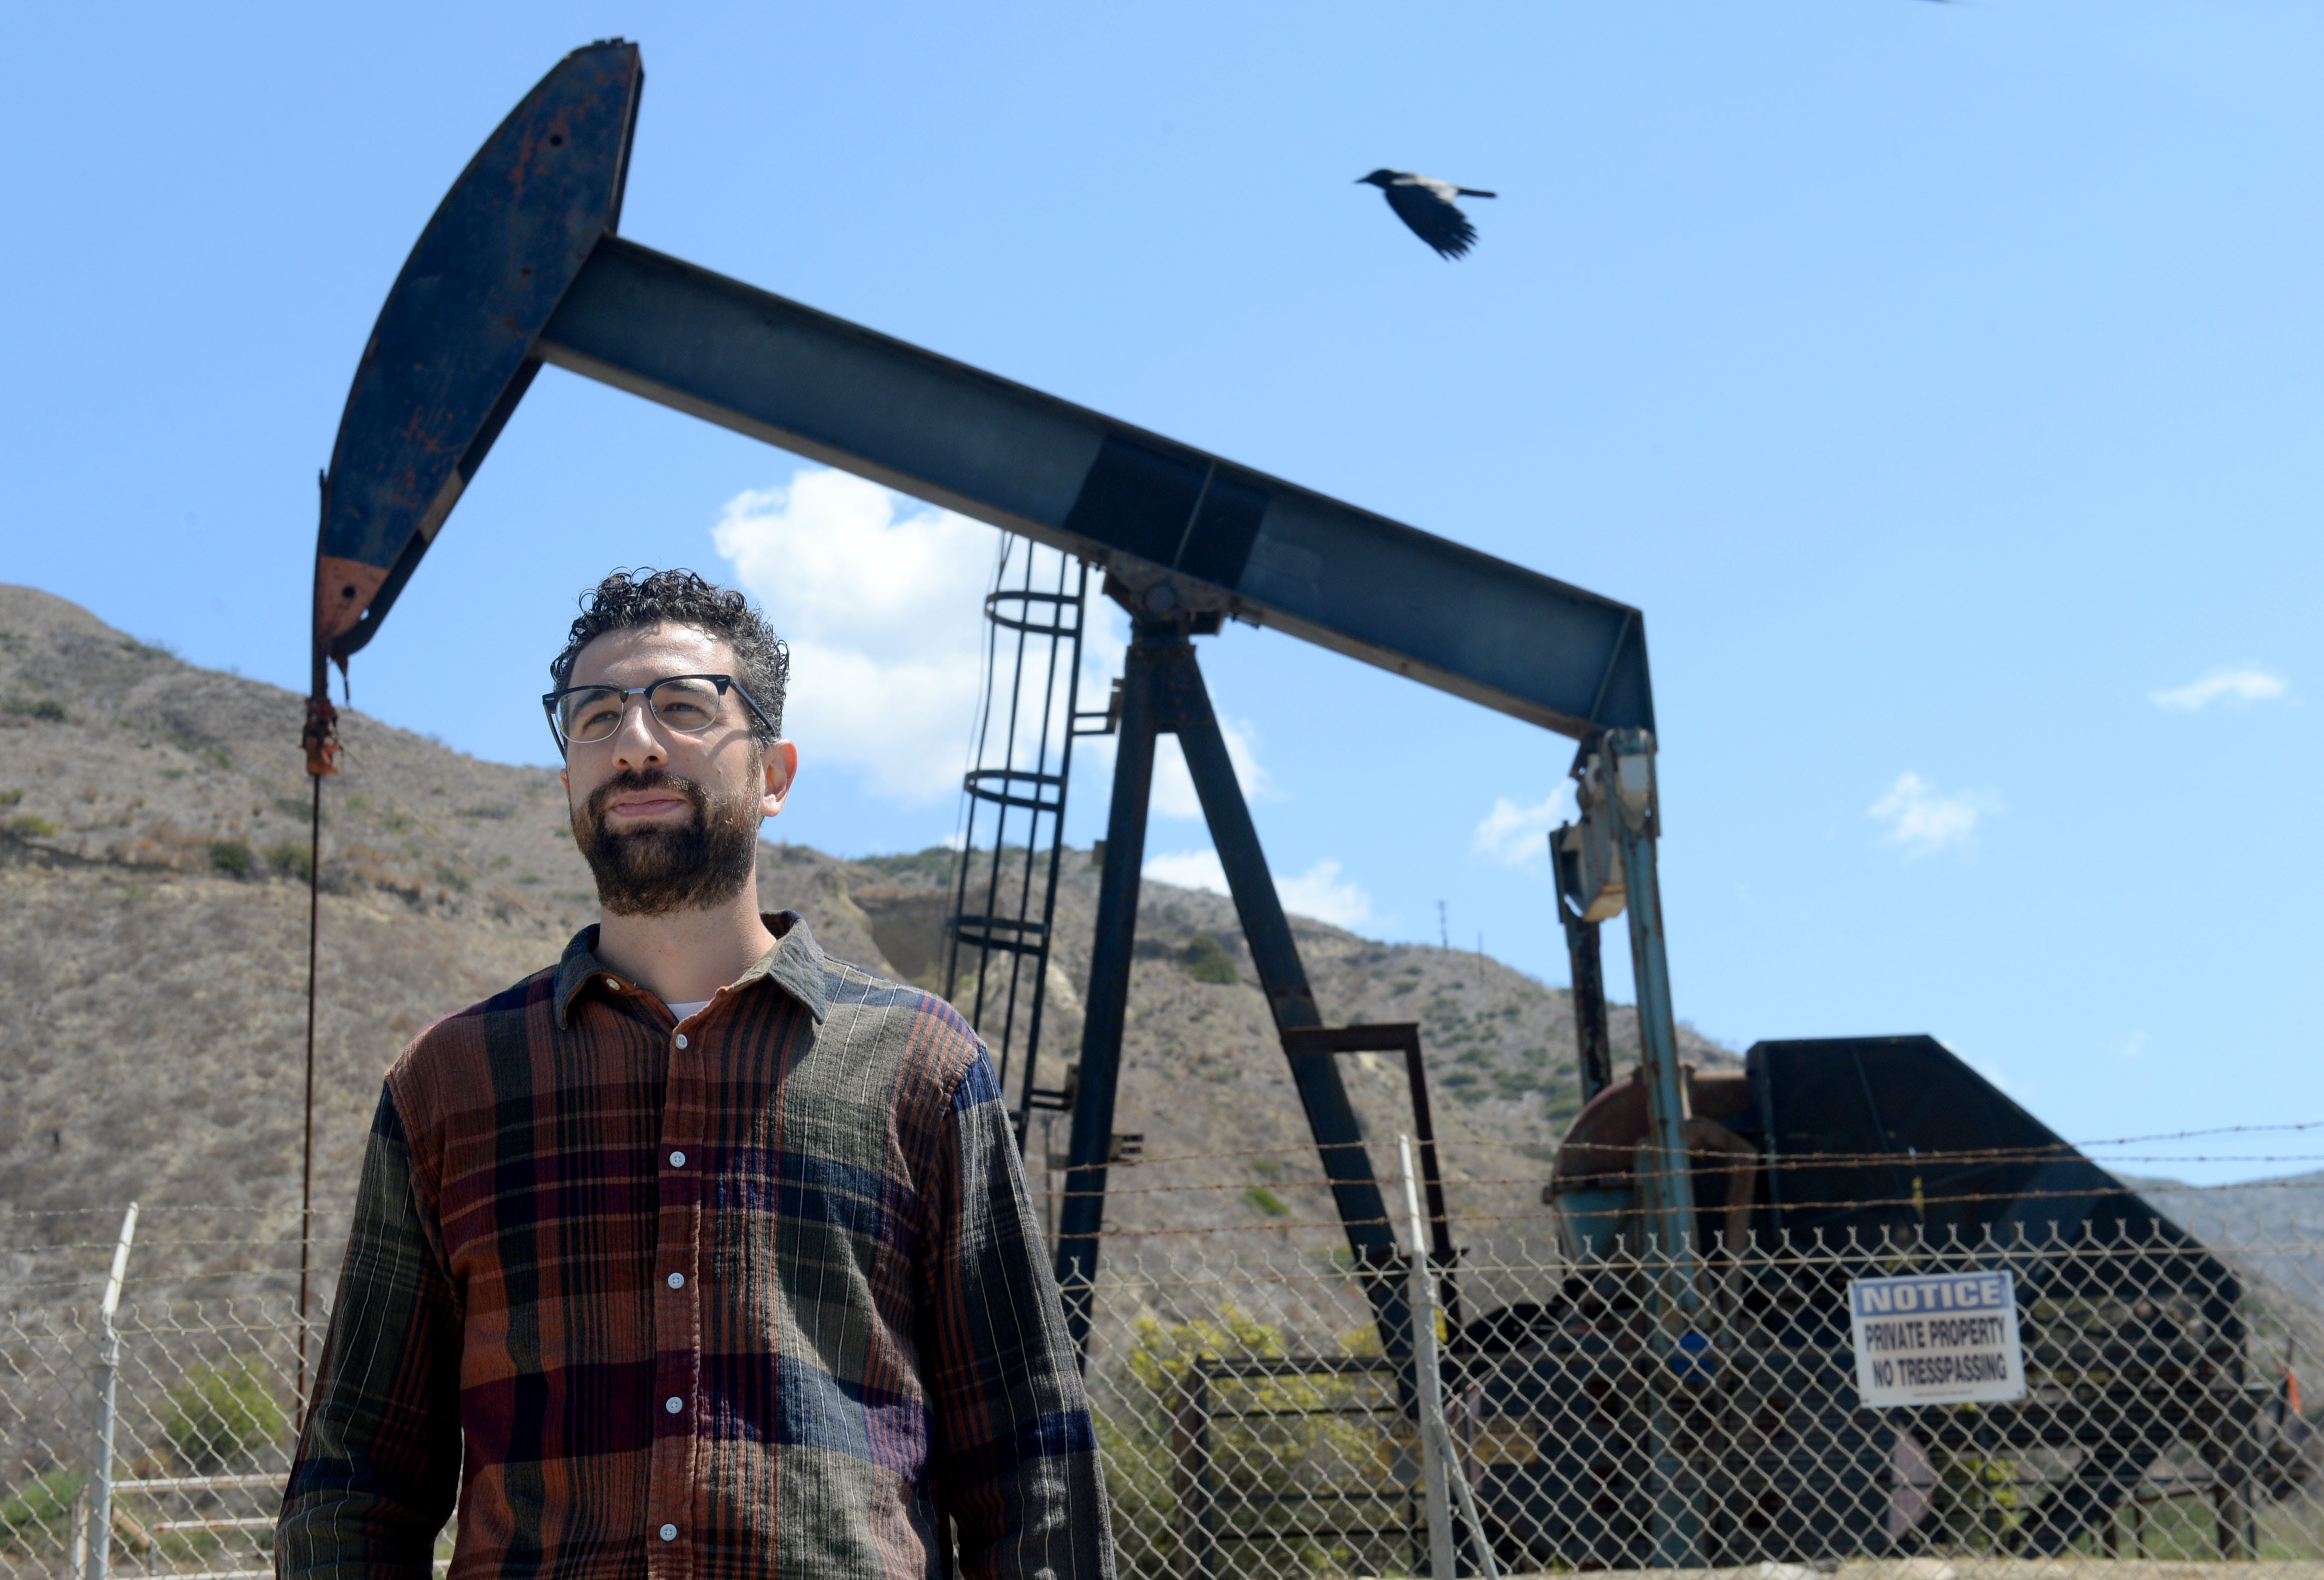 Tomas Rebecchi, an organizer with environmental group Food and Water Watch, stands near an oil well owned by California Resources Corporation along the Central Coast.